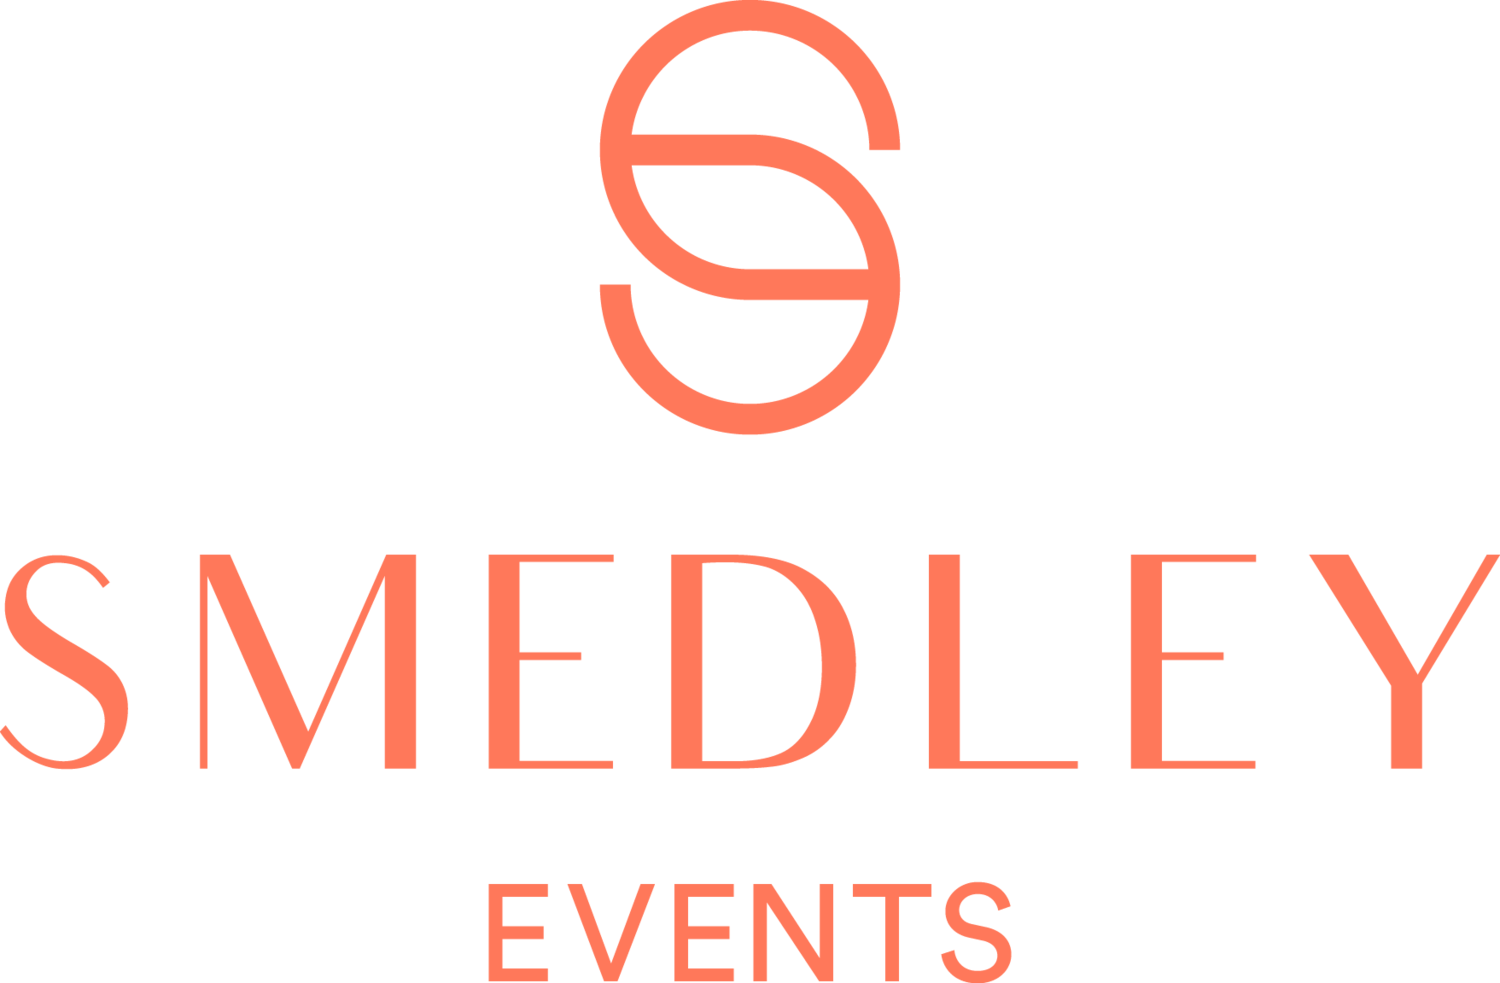 Smedley Events